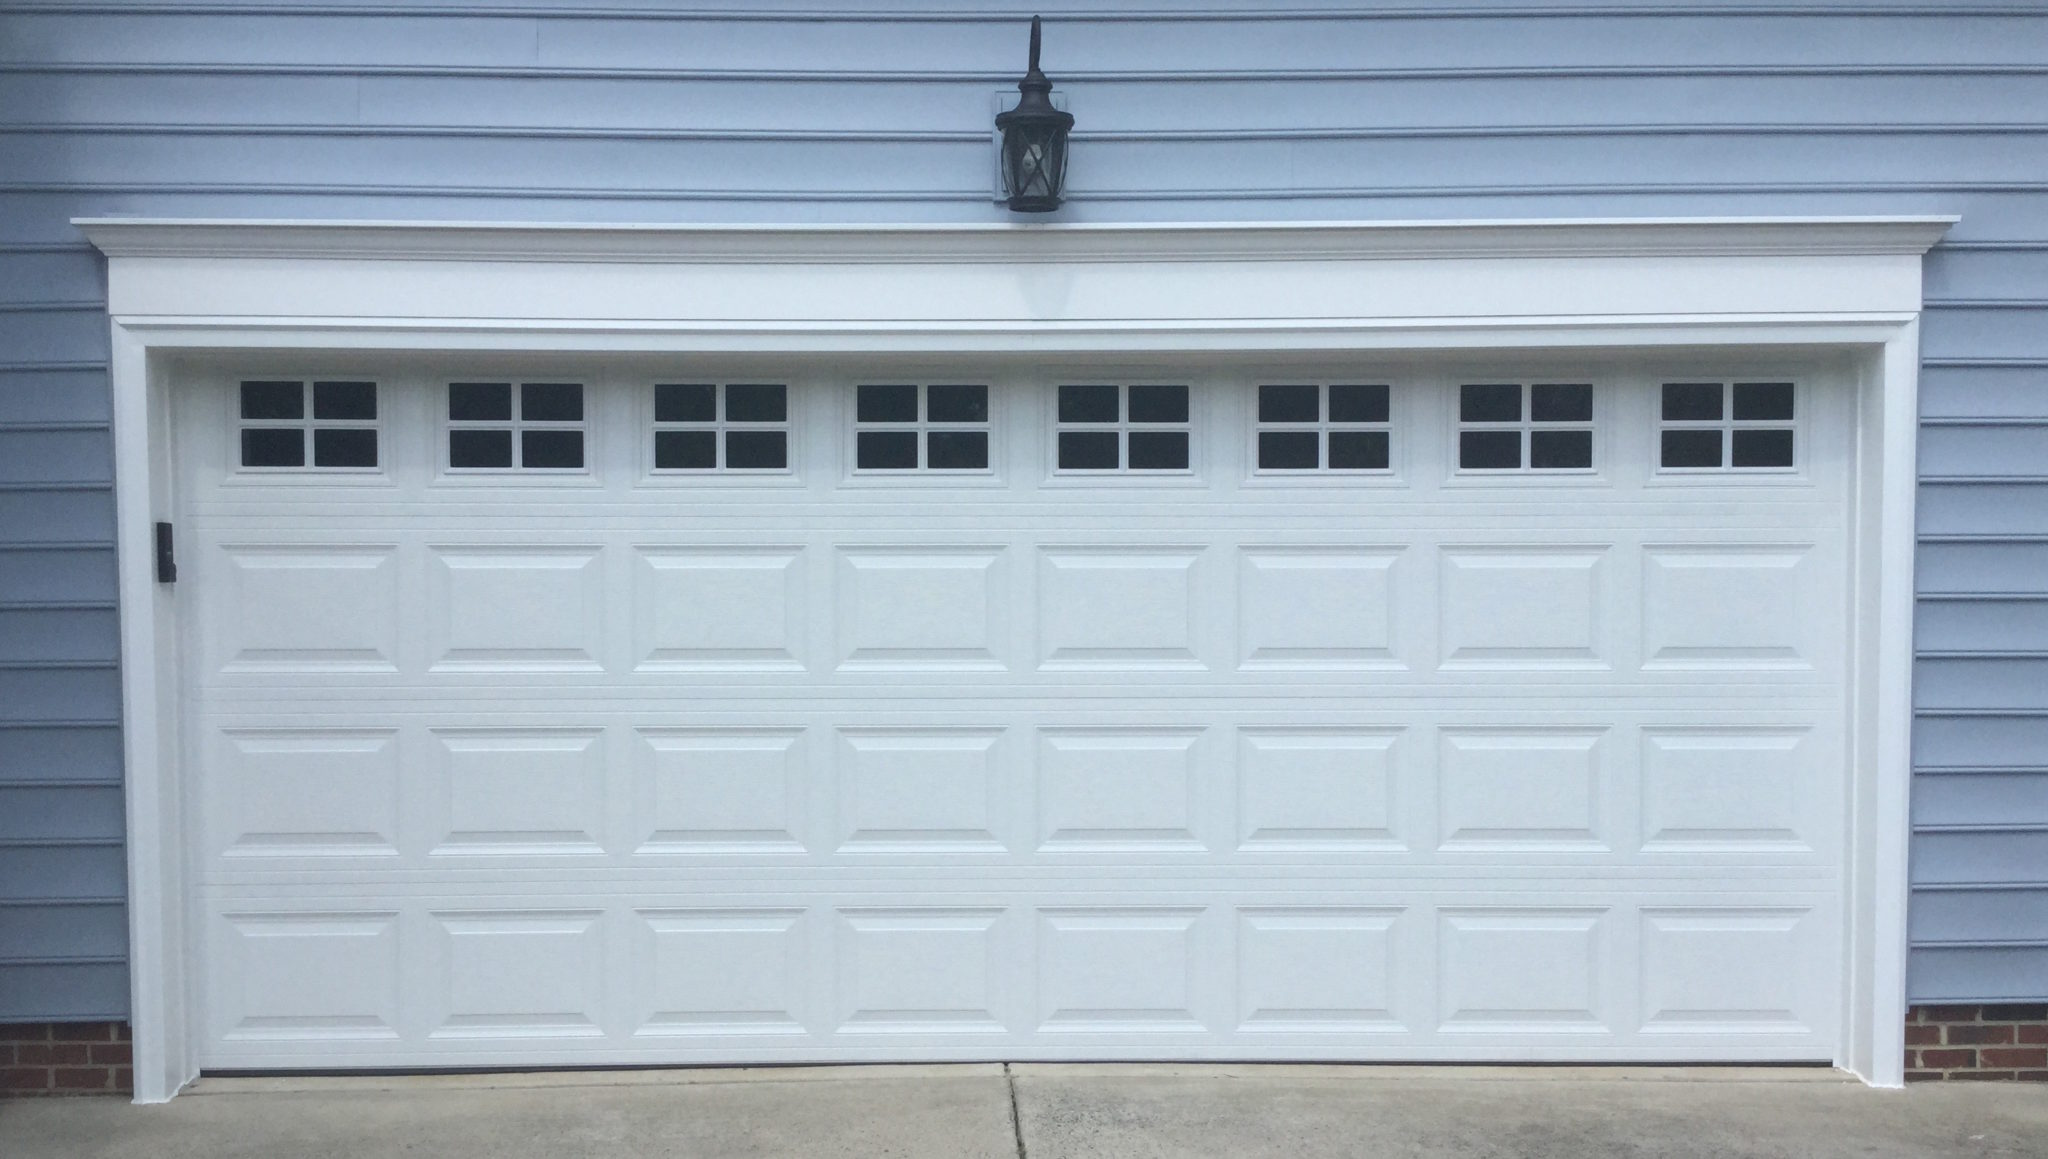 1702 #4C6680 3610 Residential Garage Door Installation A Plus Garage Doors save image Garage Doors Installers 37773008